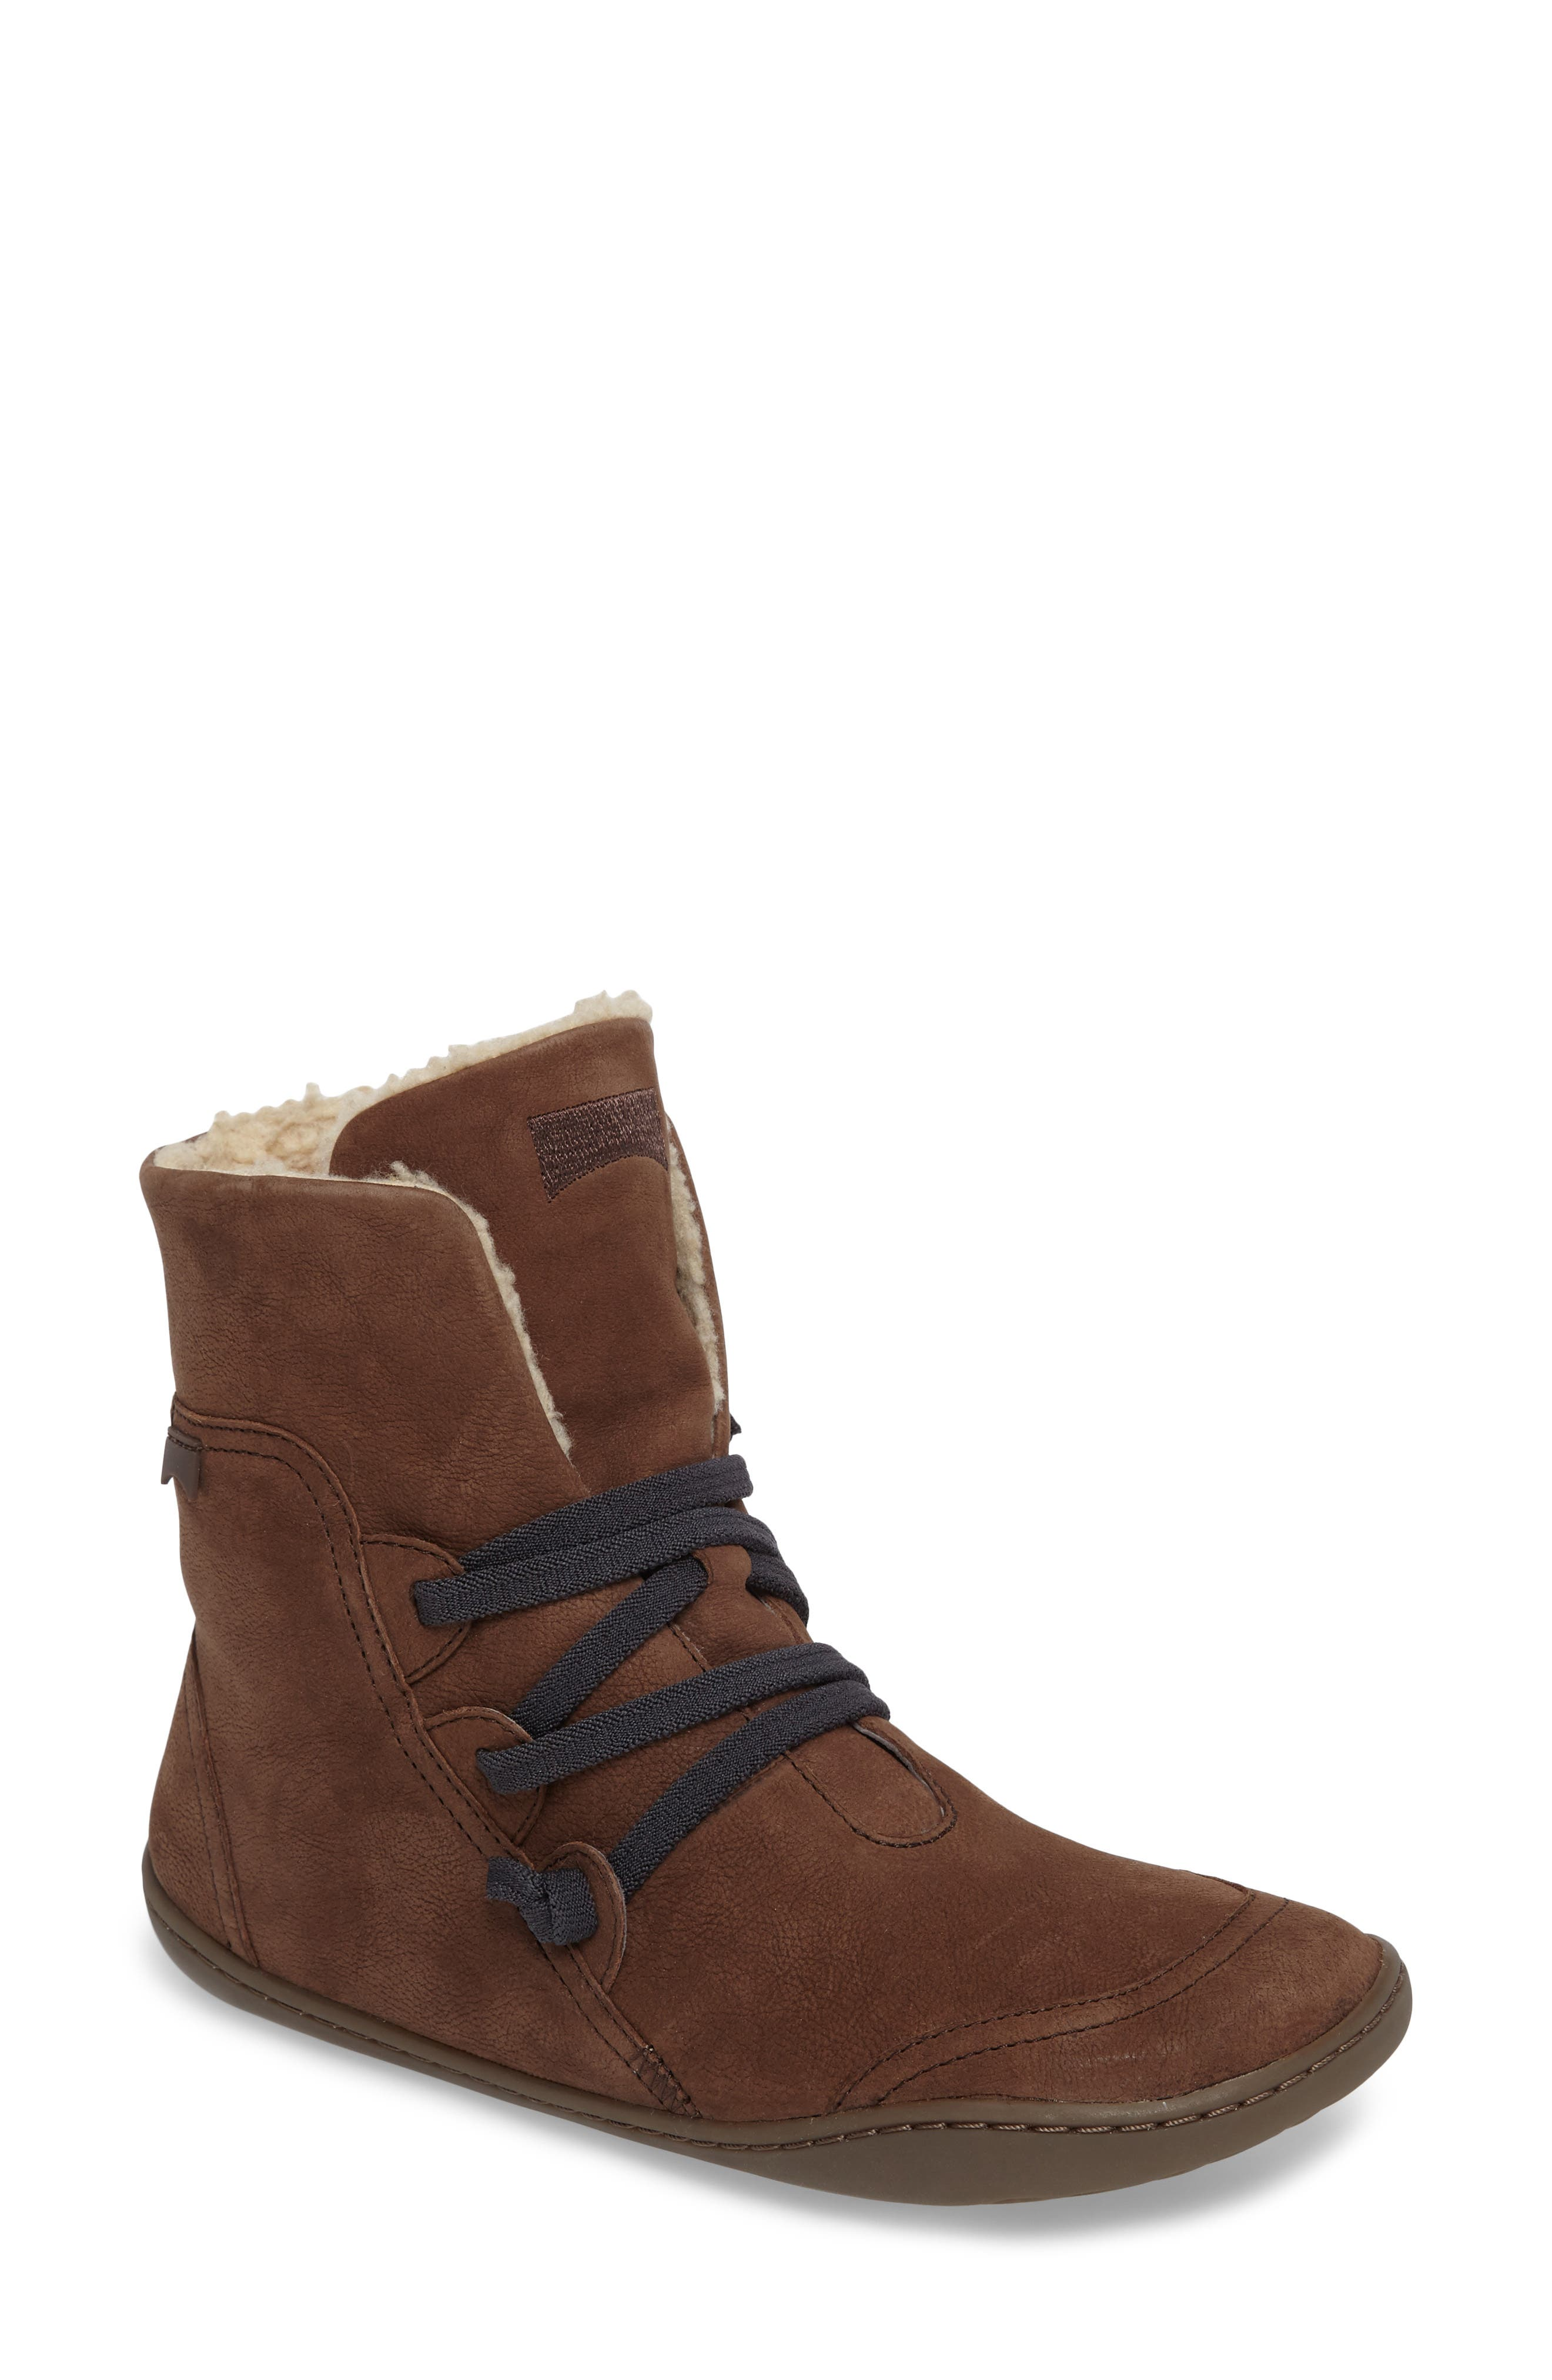 'Peu Cami' Bootie,                         Main,                         color, Brown Leather